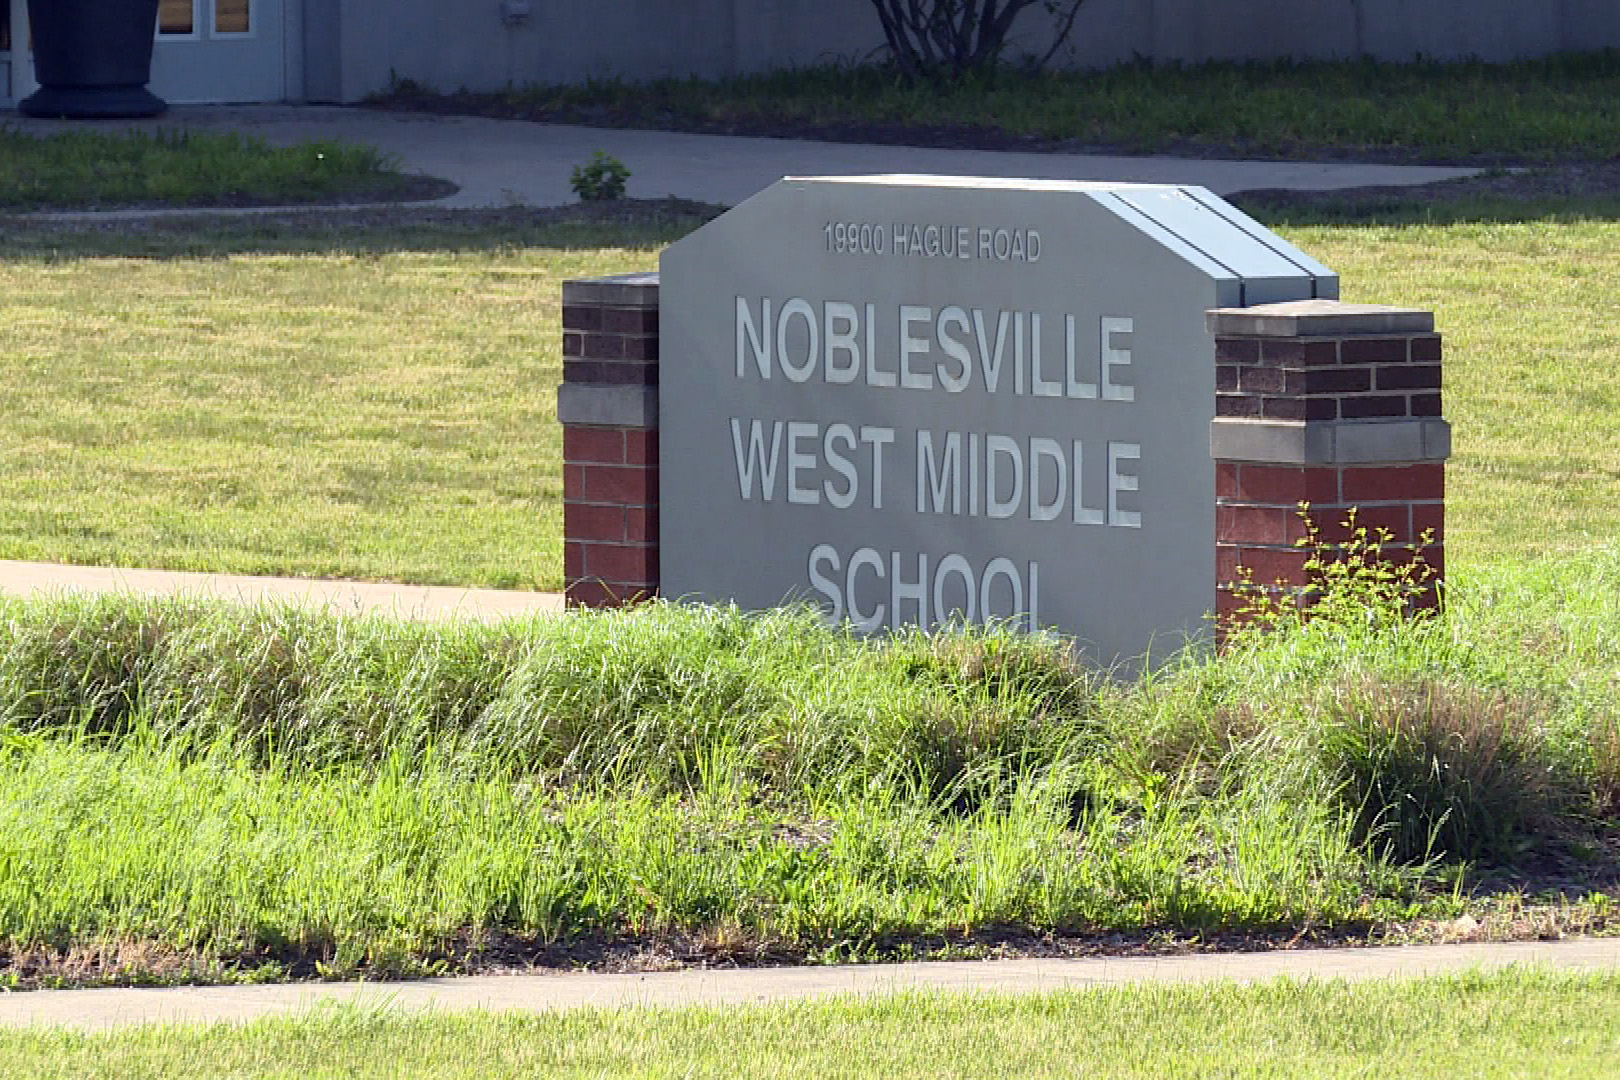 site://BL-RTV-WEBS.blank/news/no-remorse-judge-sends-noblesville-teen-shooter-to-juvenile-detention